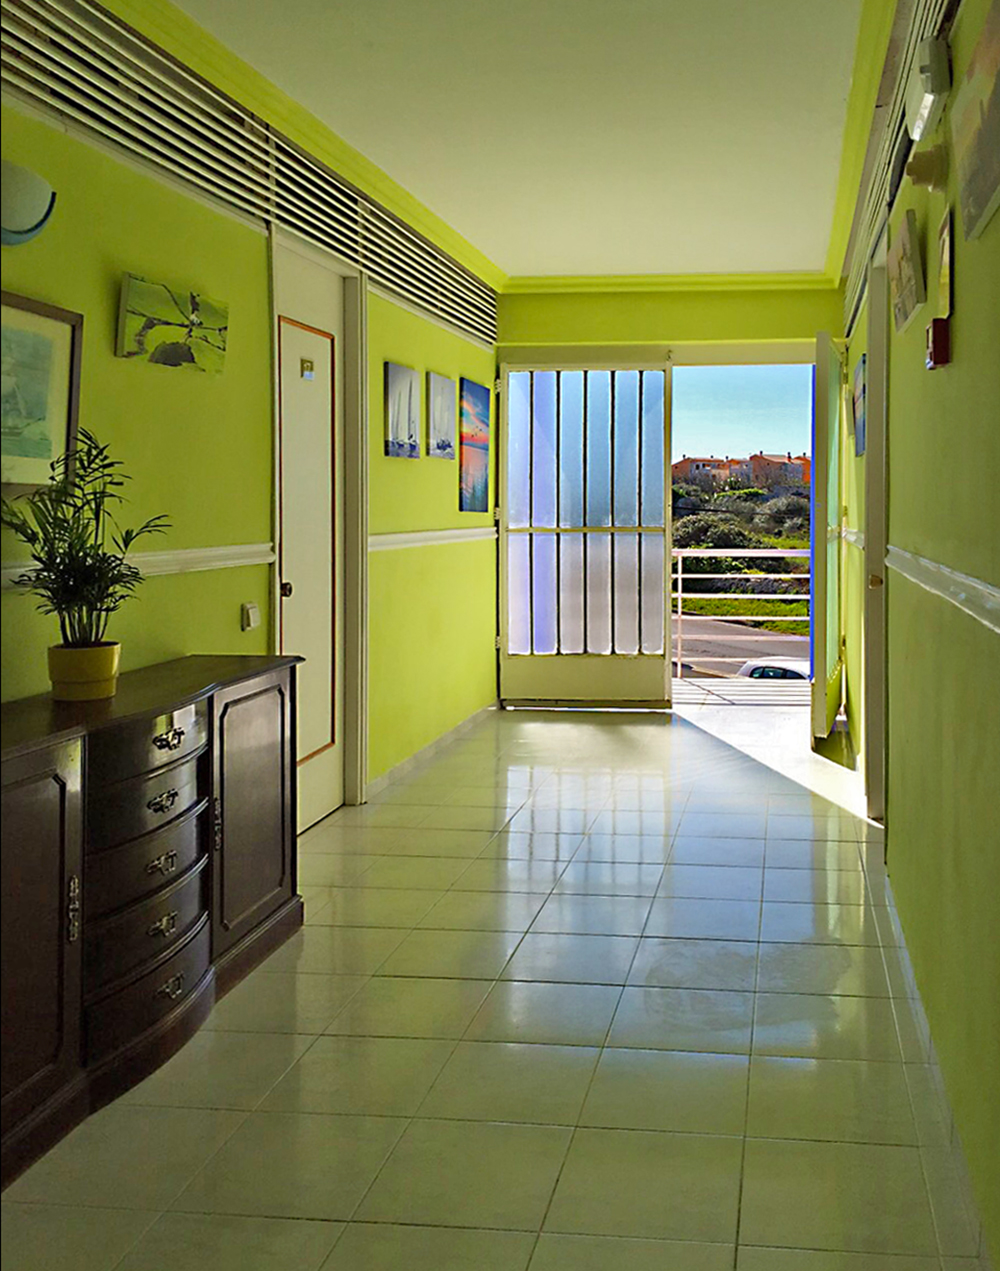 Foyer in apartment with green walls and a gate open to the street Architectural Photography